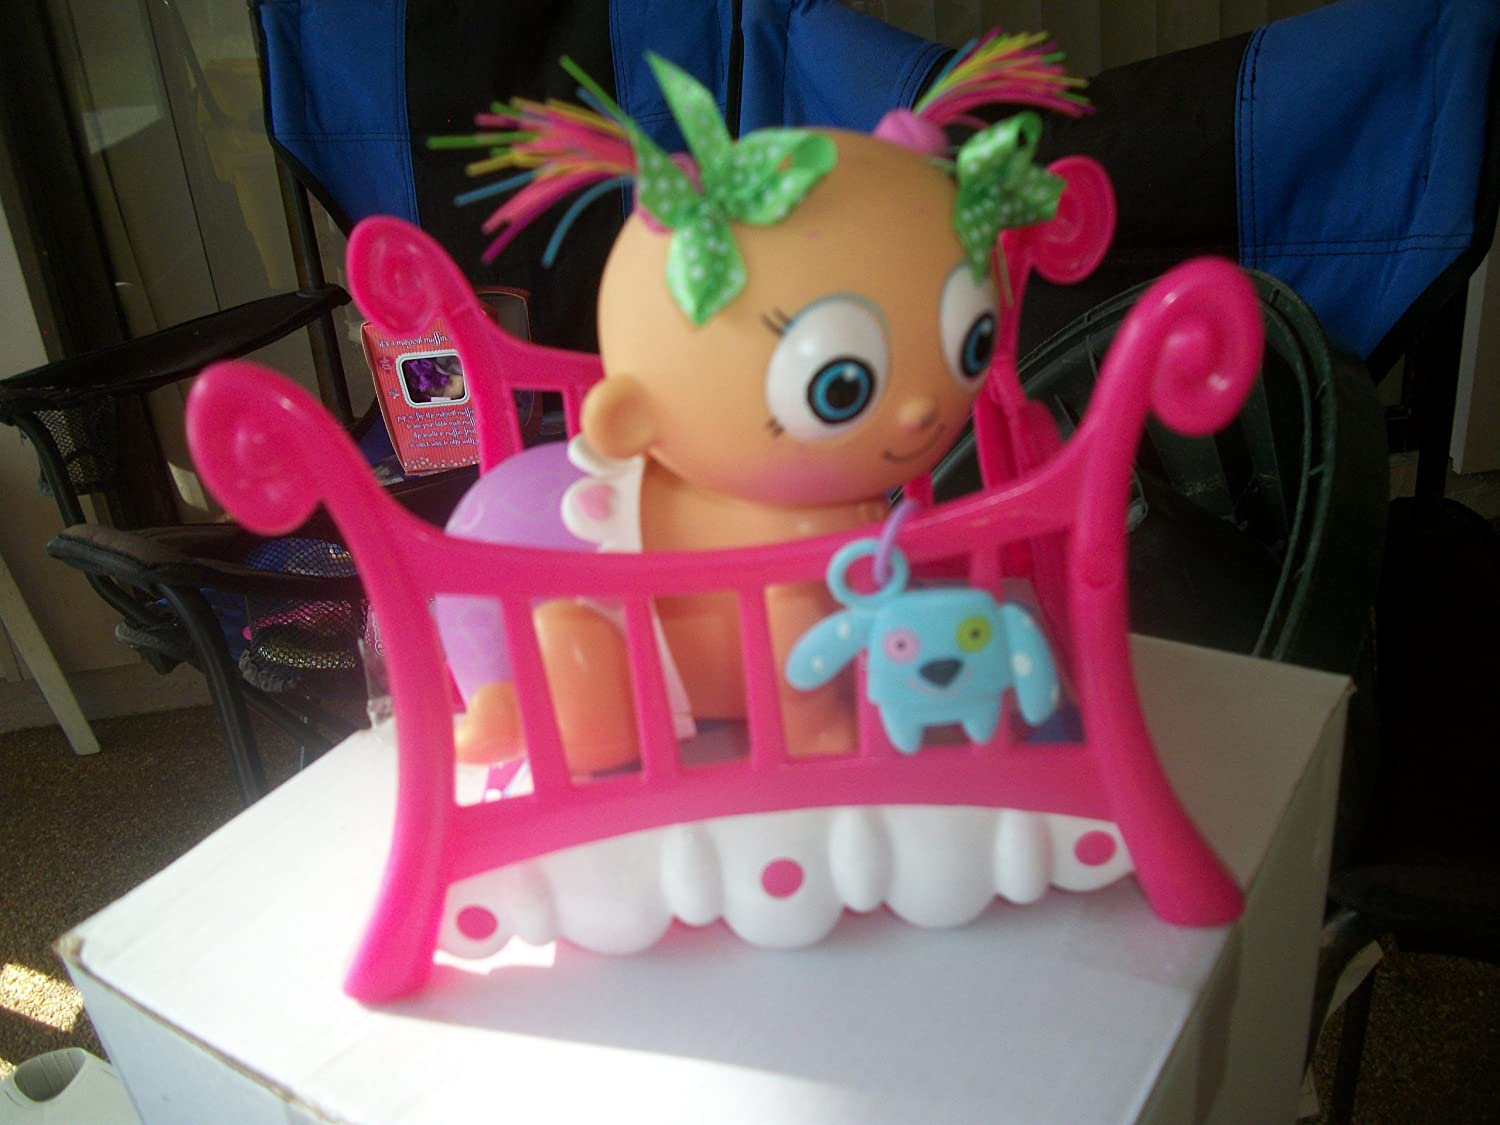 Dinge Babies Crazy Cute Princess Crib and Accessories